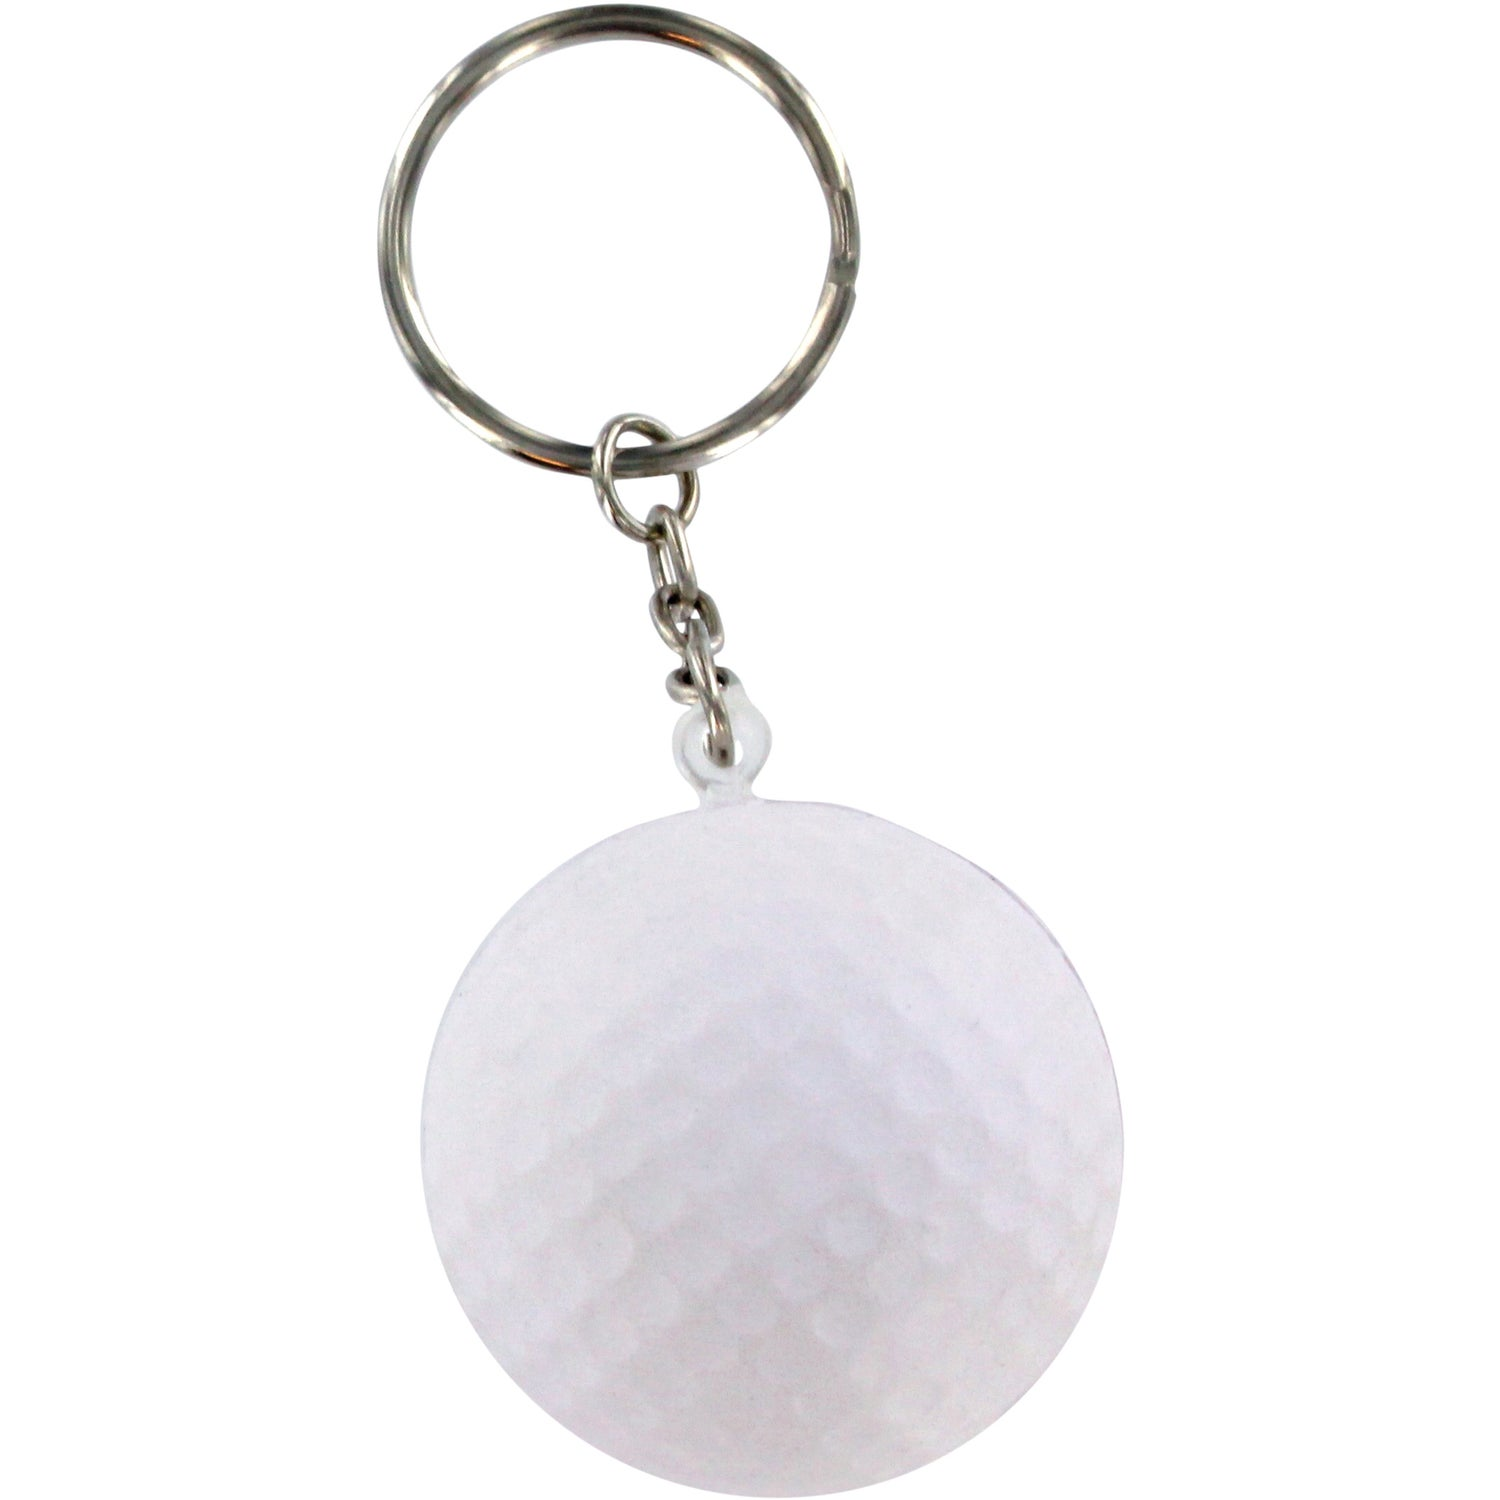 promotional golf ball stress ball key chains with custom logo for